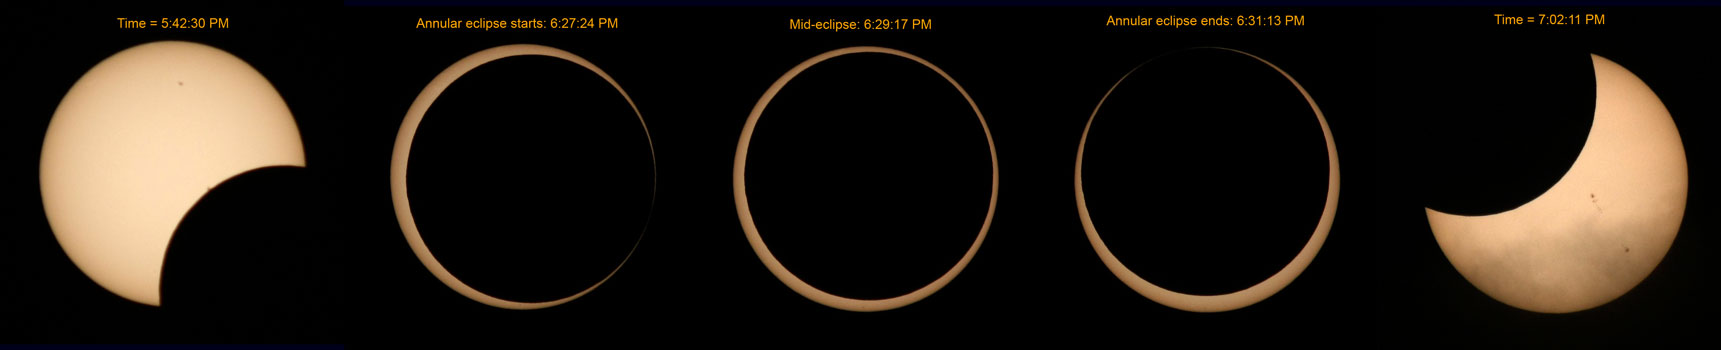 Annular eclipse of May 20, 2012